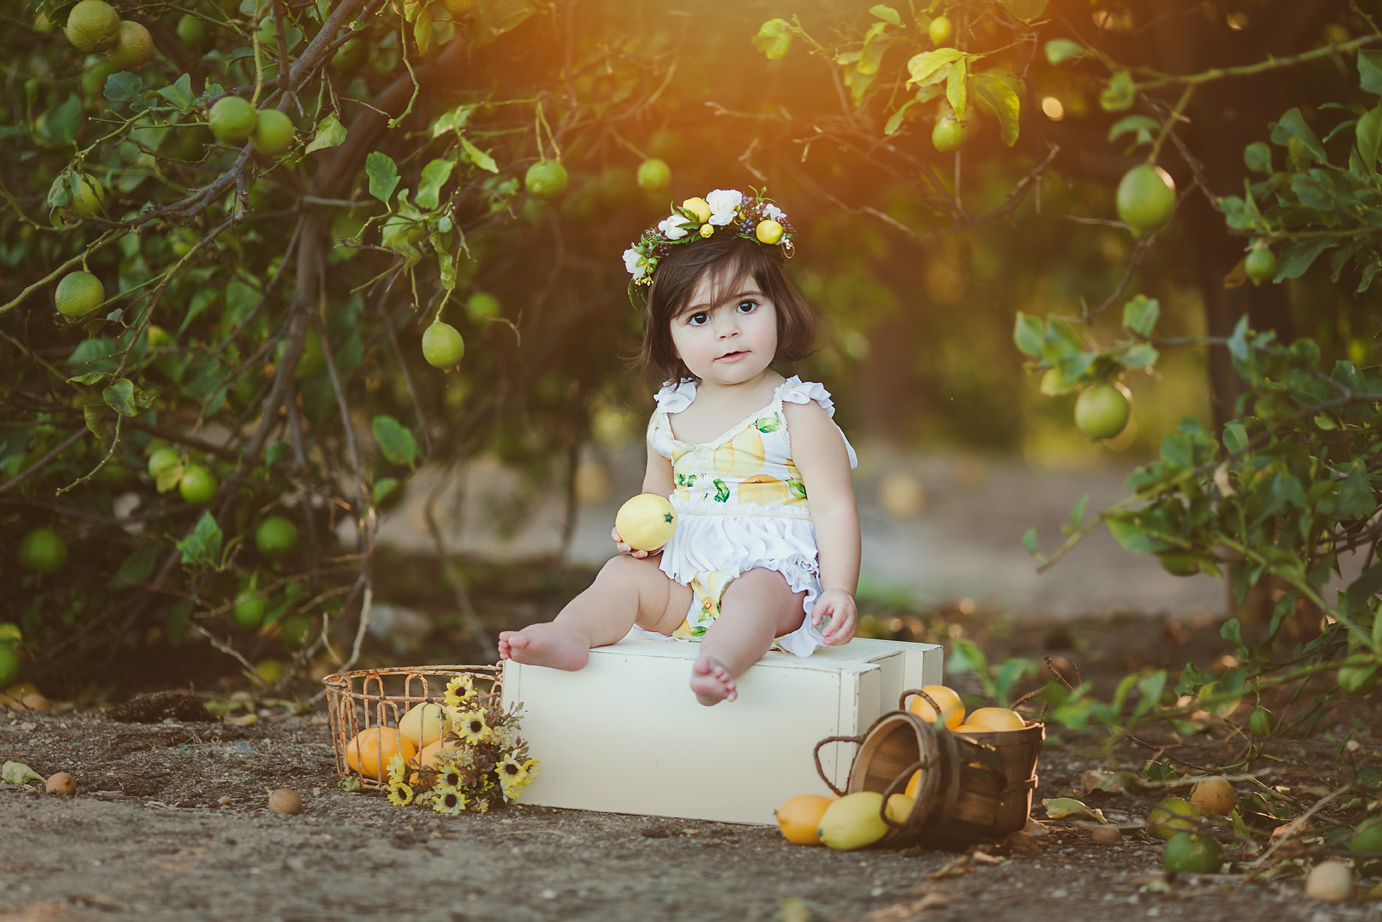 irvine-orange-county-baby-photography-studio-outdoor-fine-art-lemon-groves-sunset.jpg